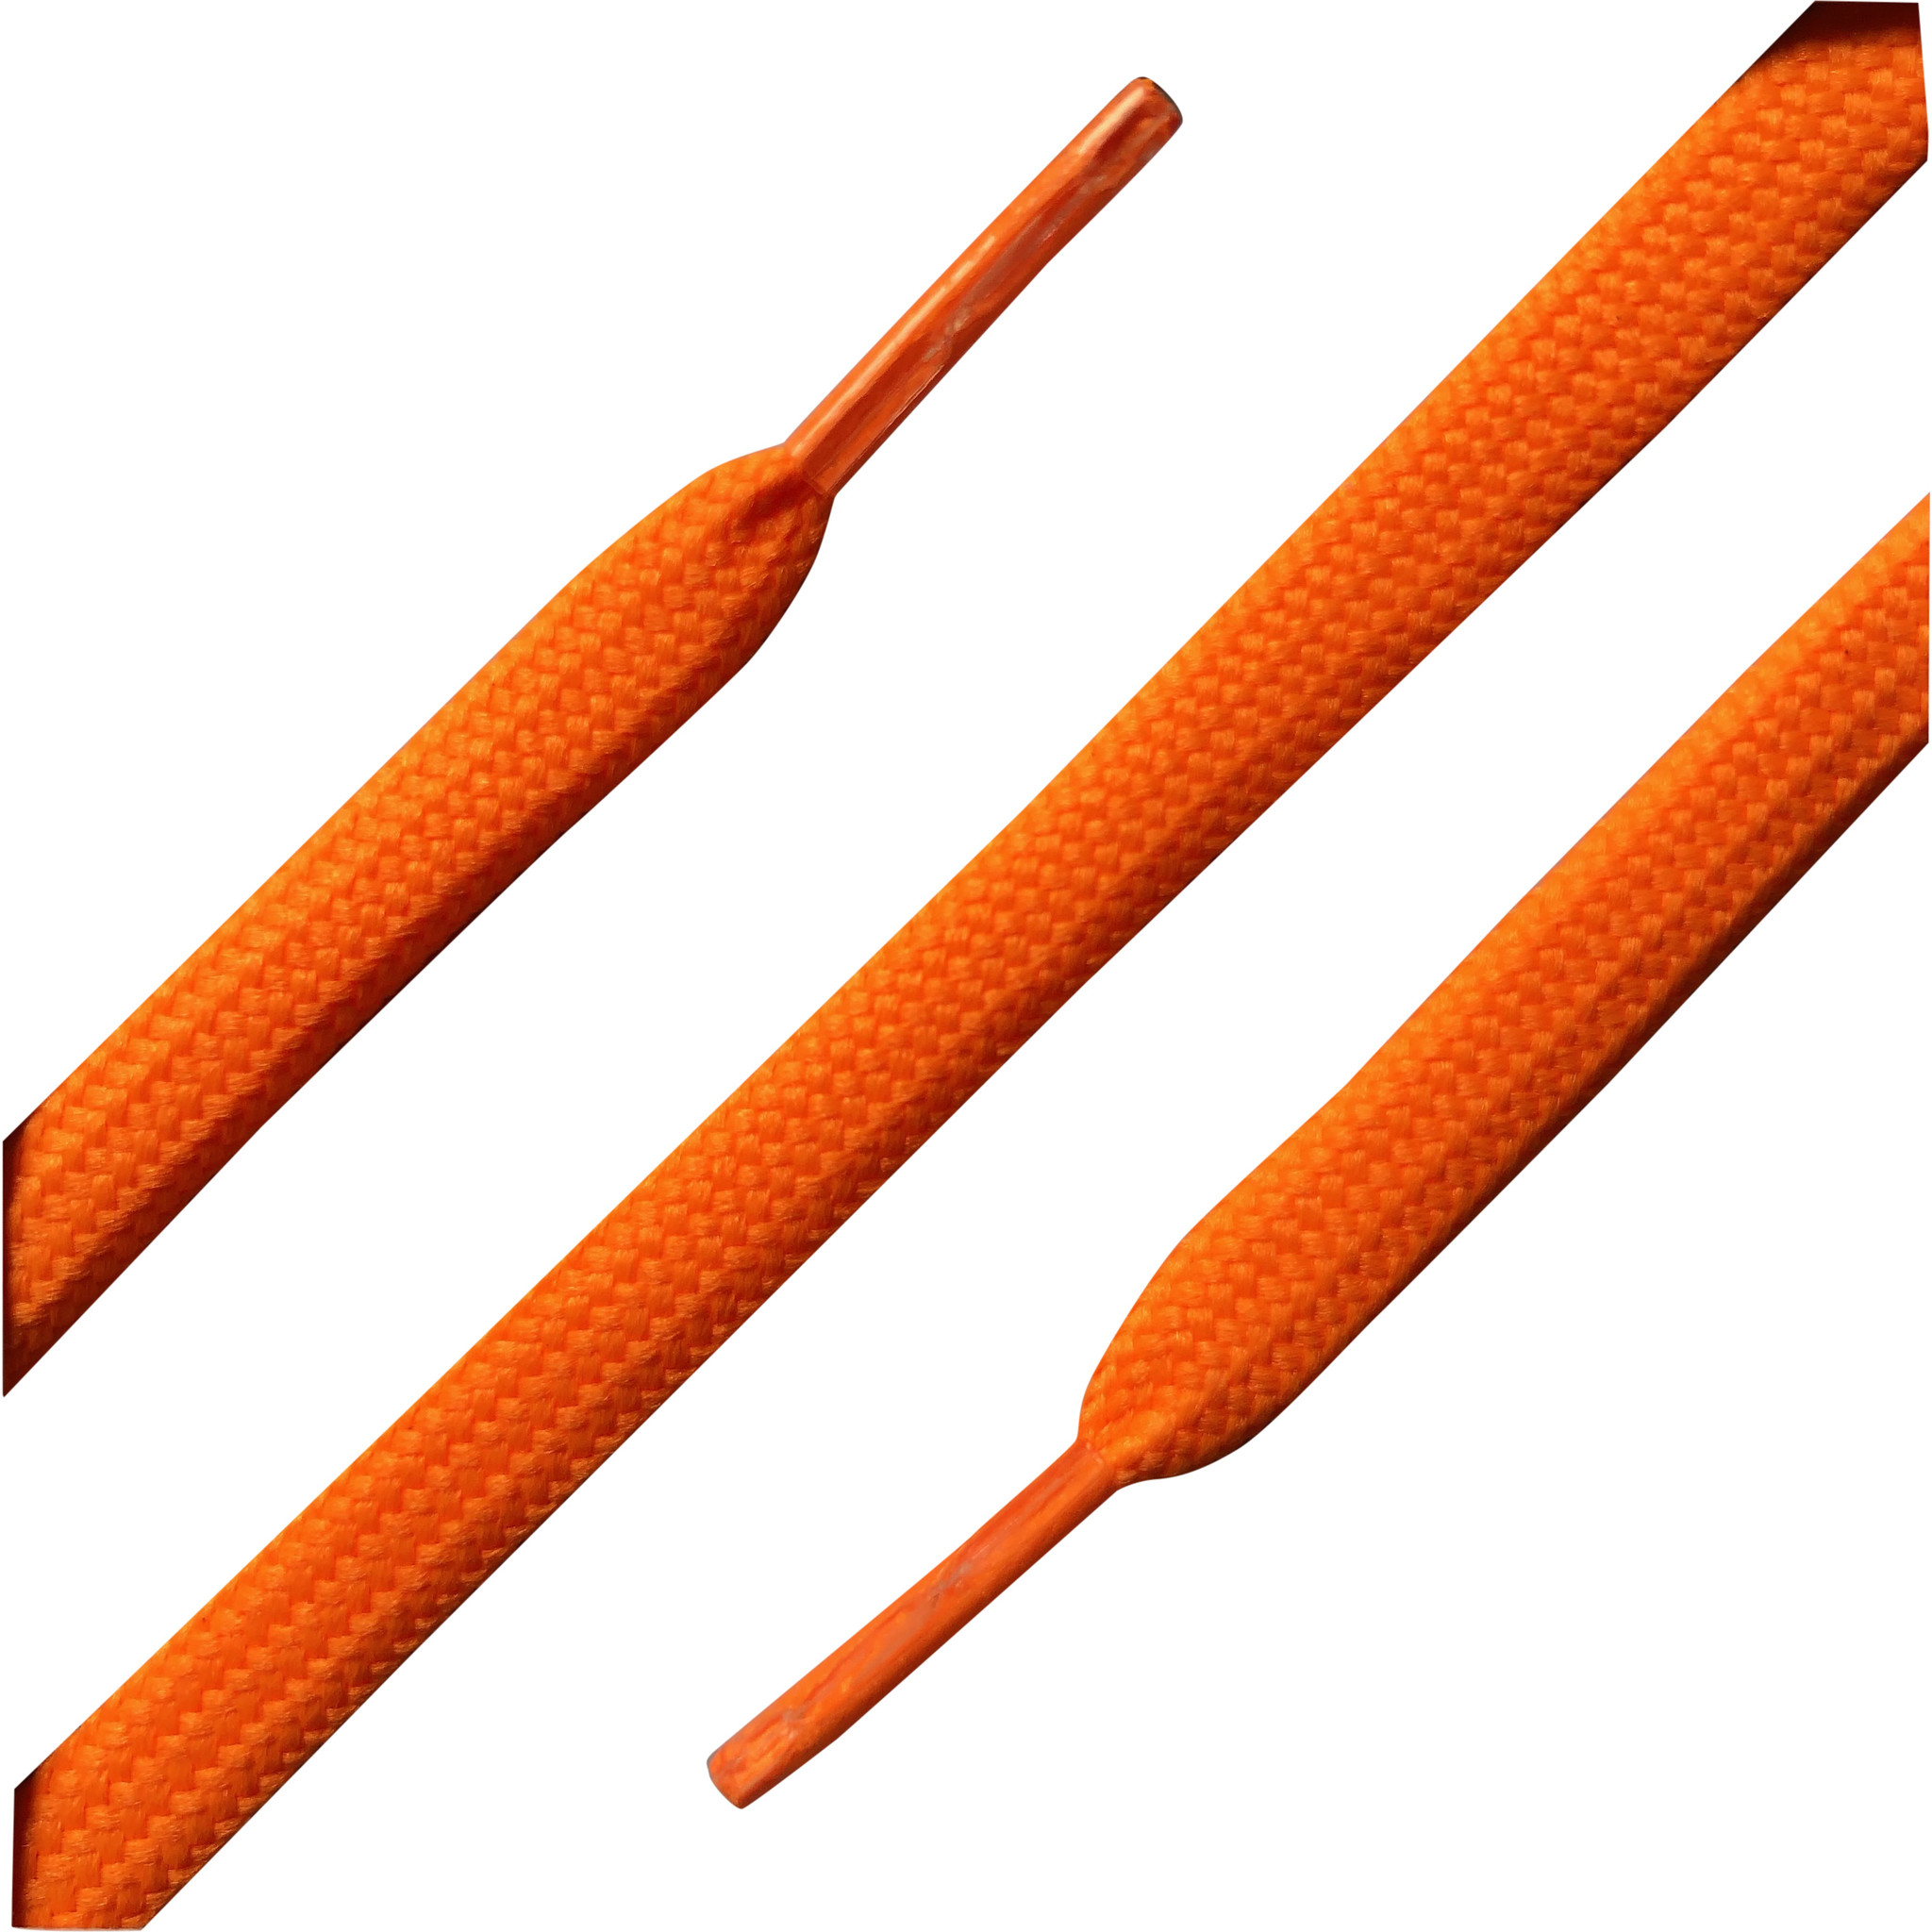 Barth Veters Barth veters 90cm - 833 - neon oranje